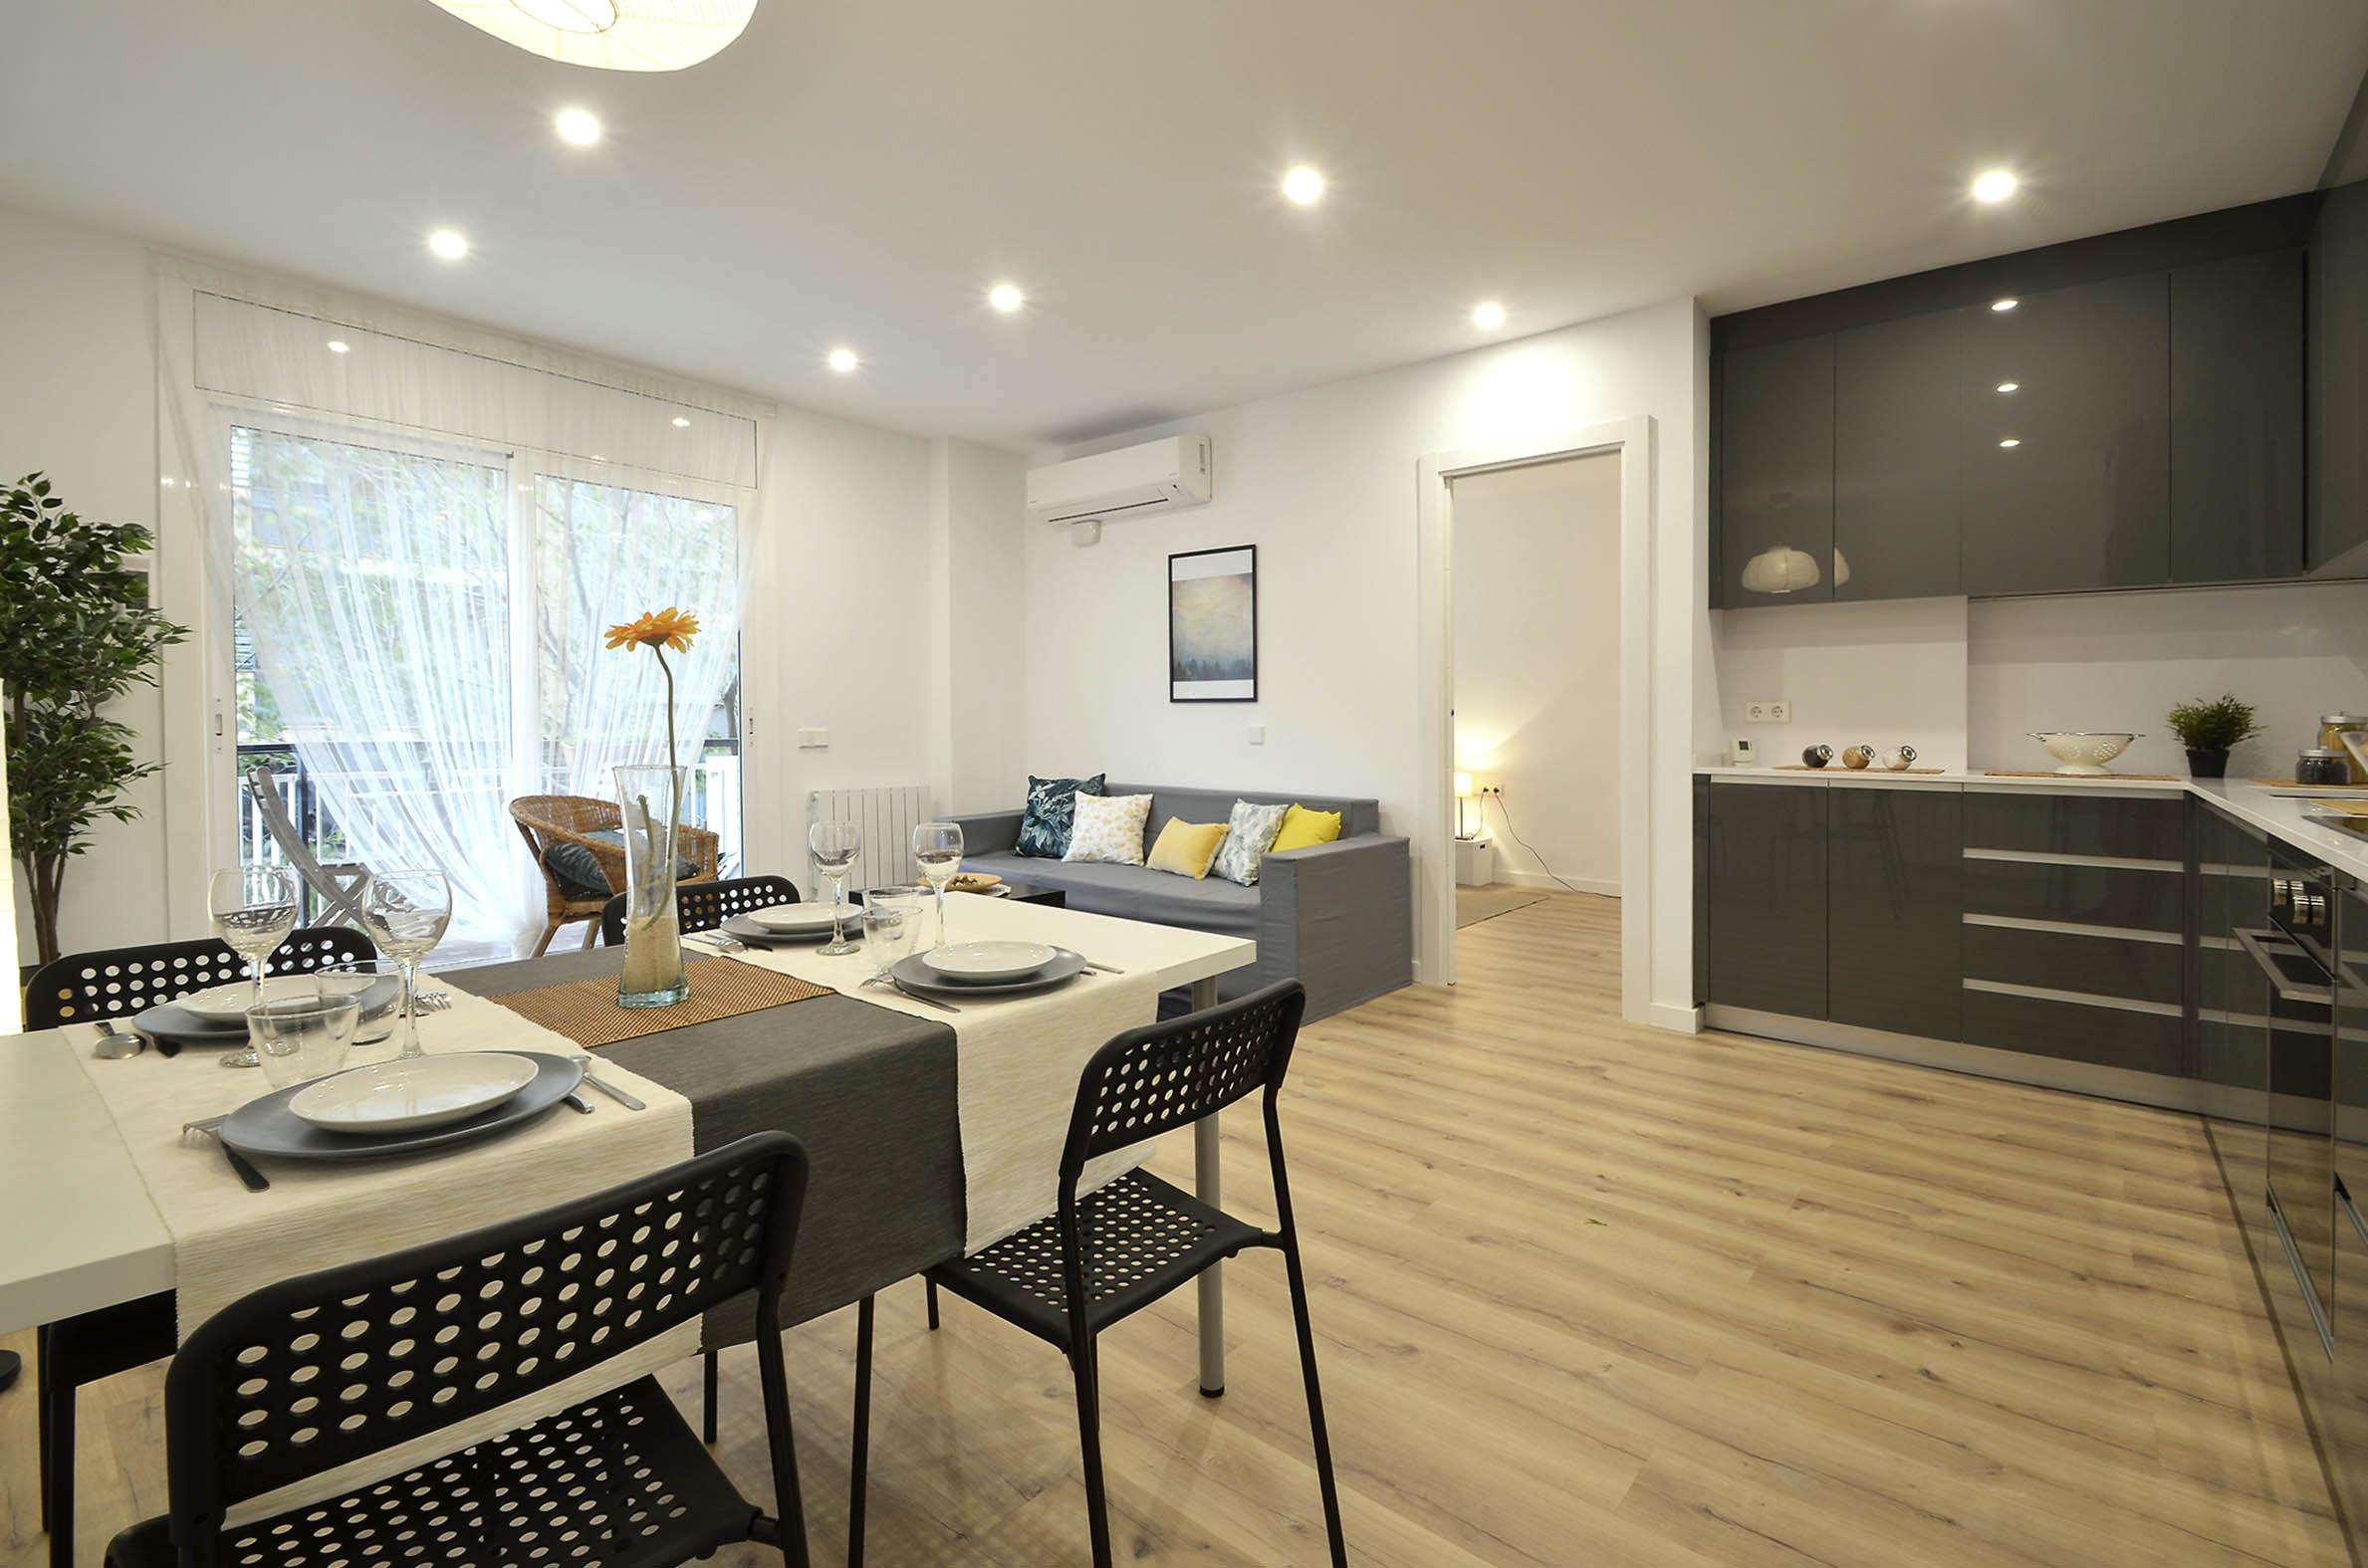 245687 Flat for sale in Eixample, Fort Pienc 6